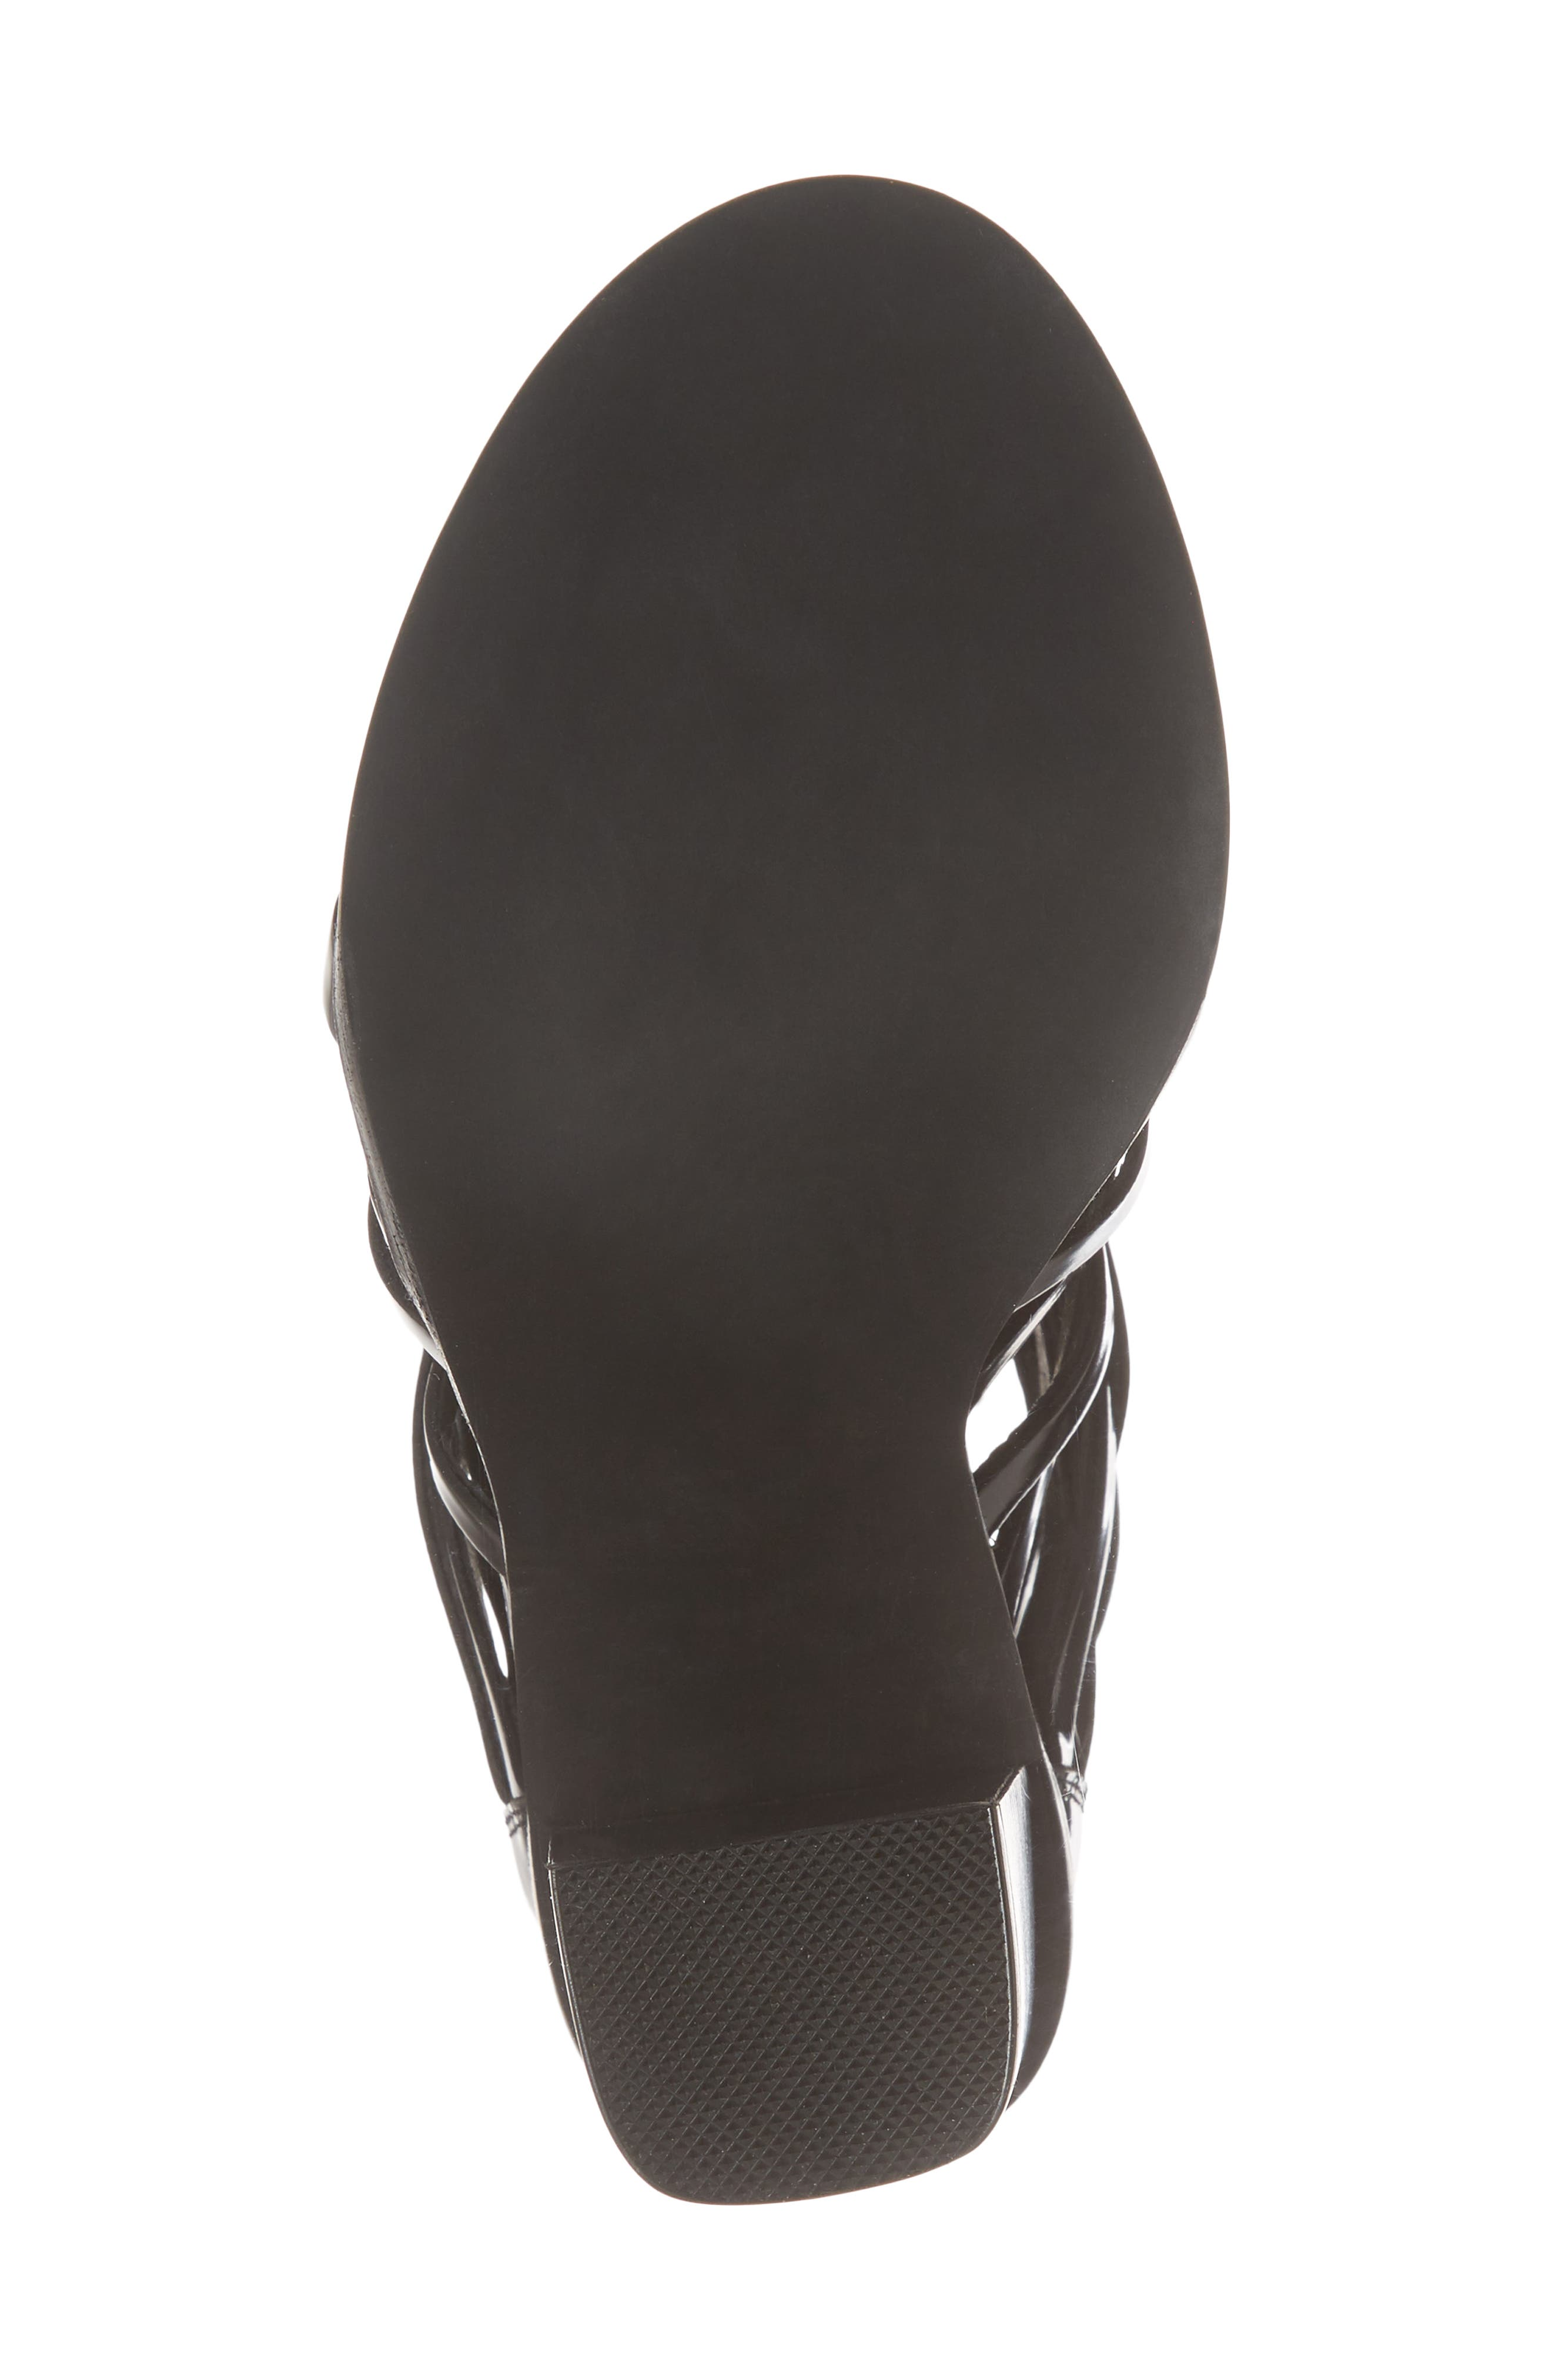 Deportivo Strappy Bootie,                             Alternate thumbnail 6, color,                             Black Leather